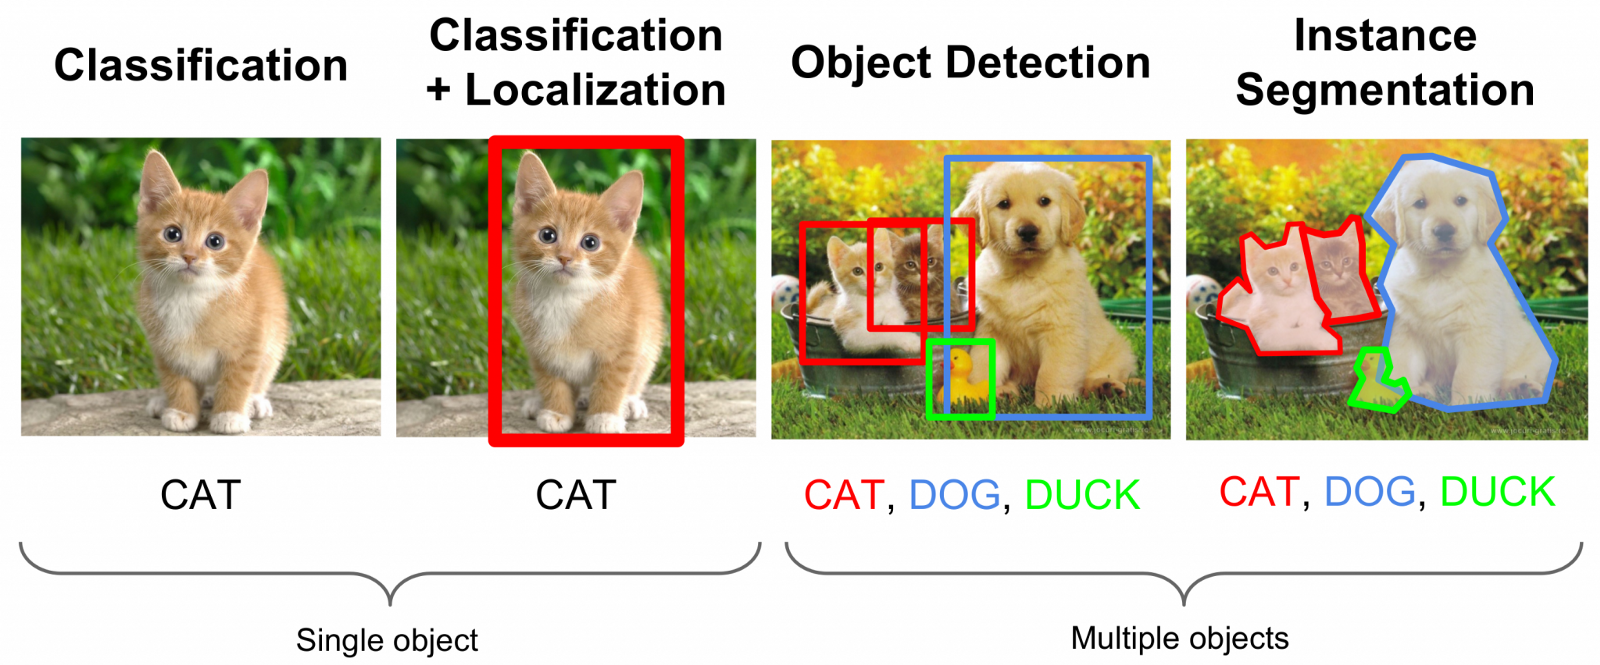 examples of classification, localization , object detection and instance segmentation using cat and dog